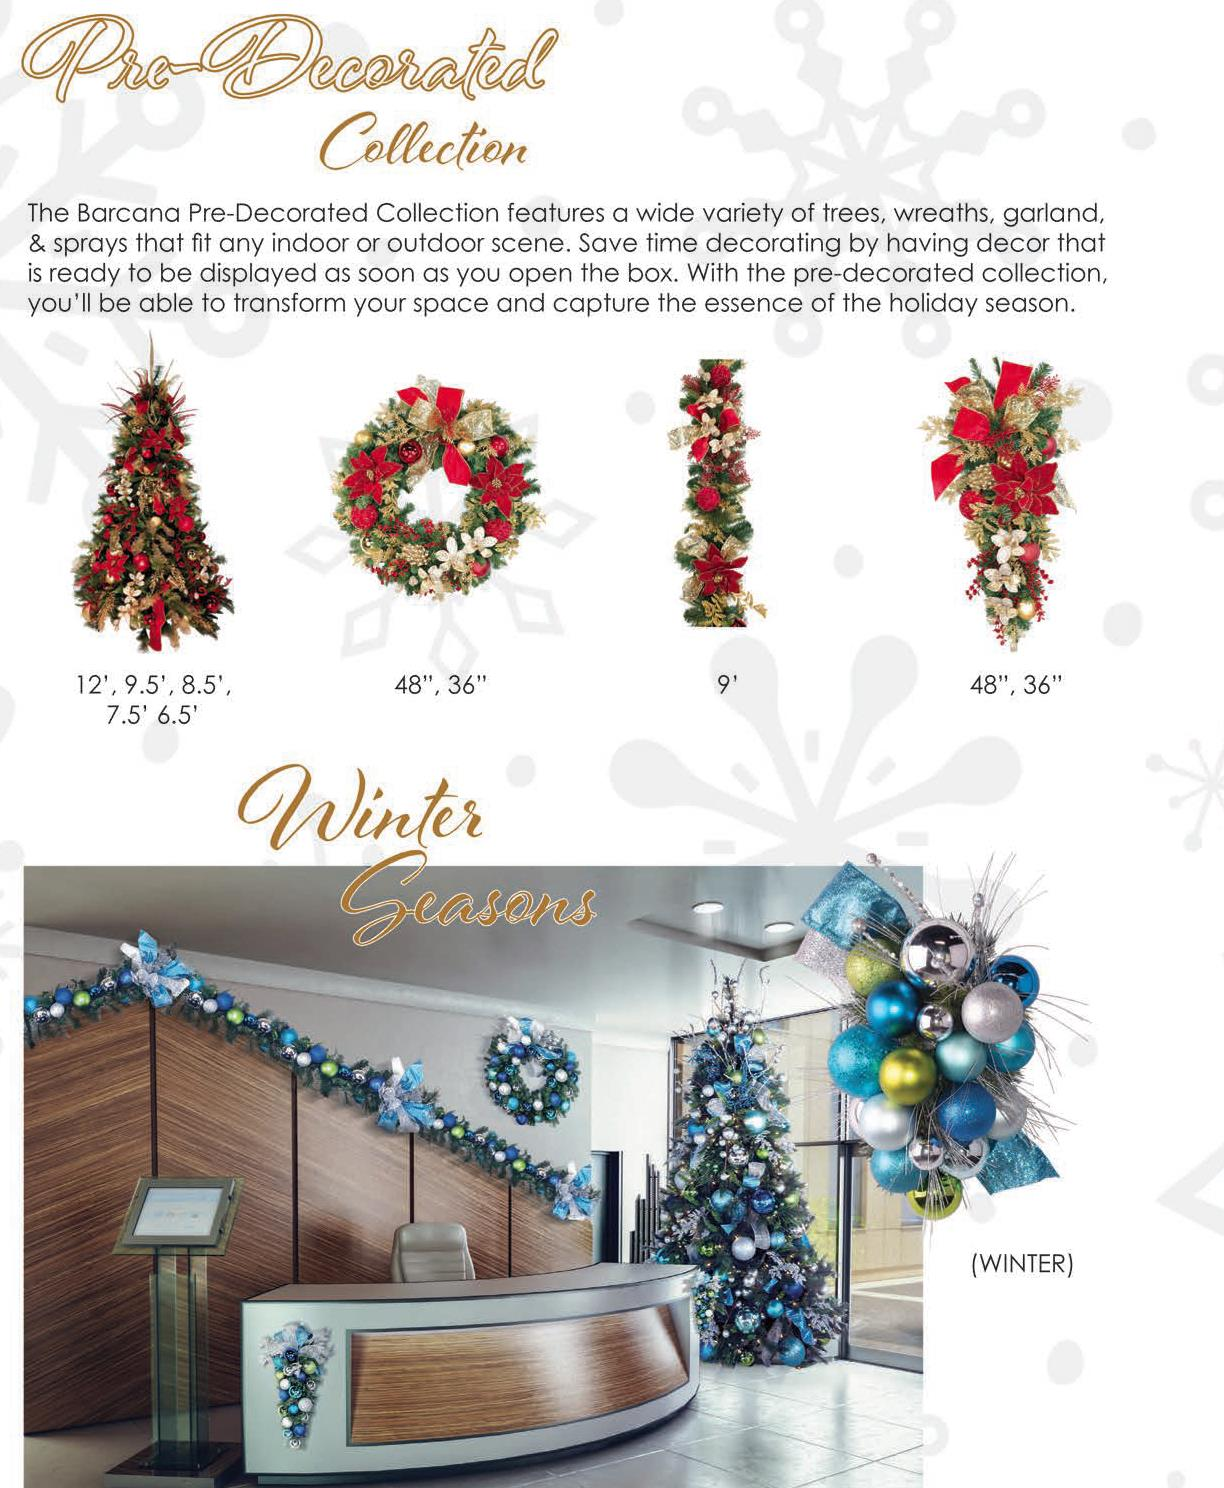 Images of the beautiful pre-decorated large Christmas wreaths